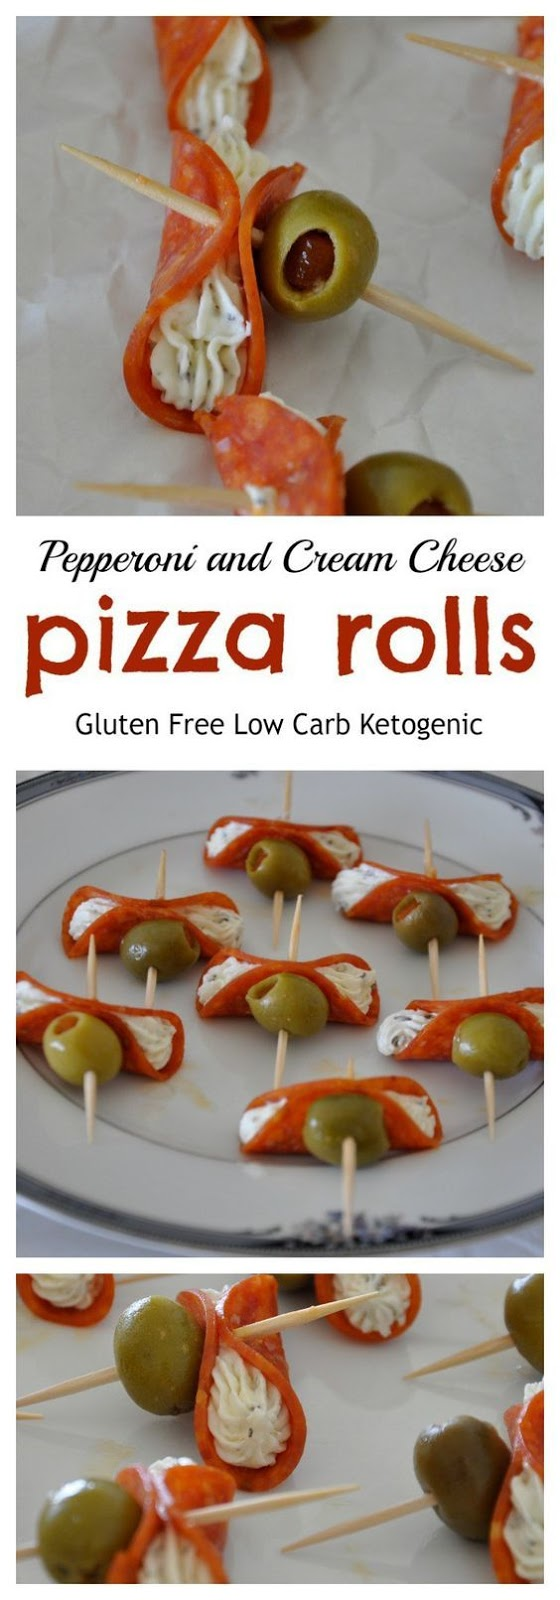 Pepperoni and Cream Cheese Pizza Rolls [Gluten Free]